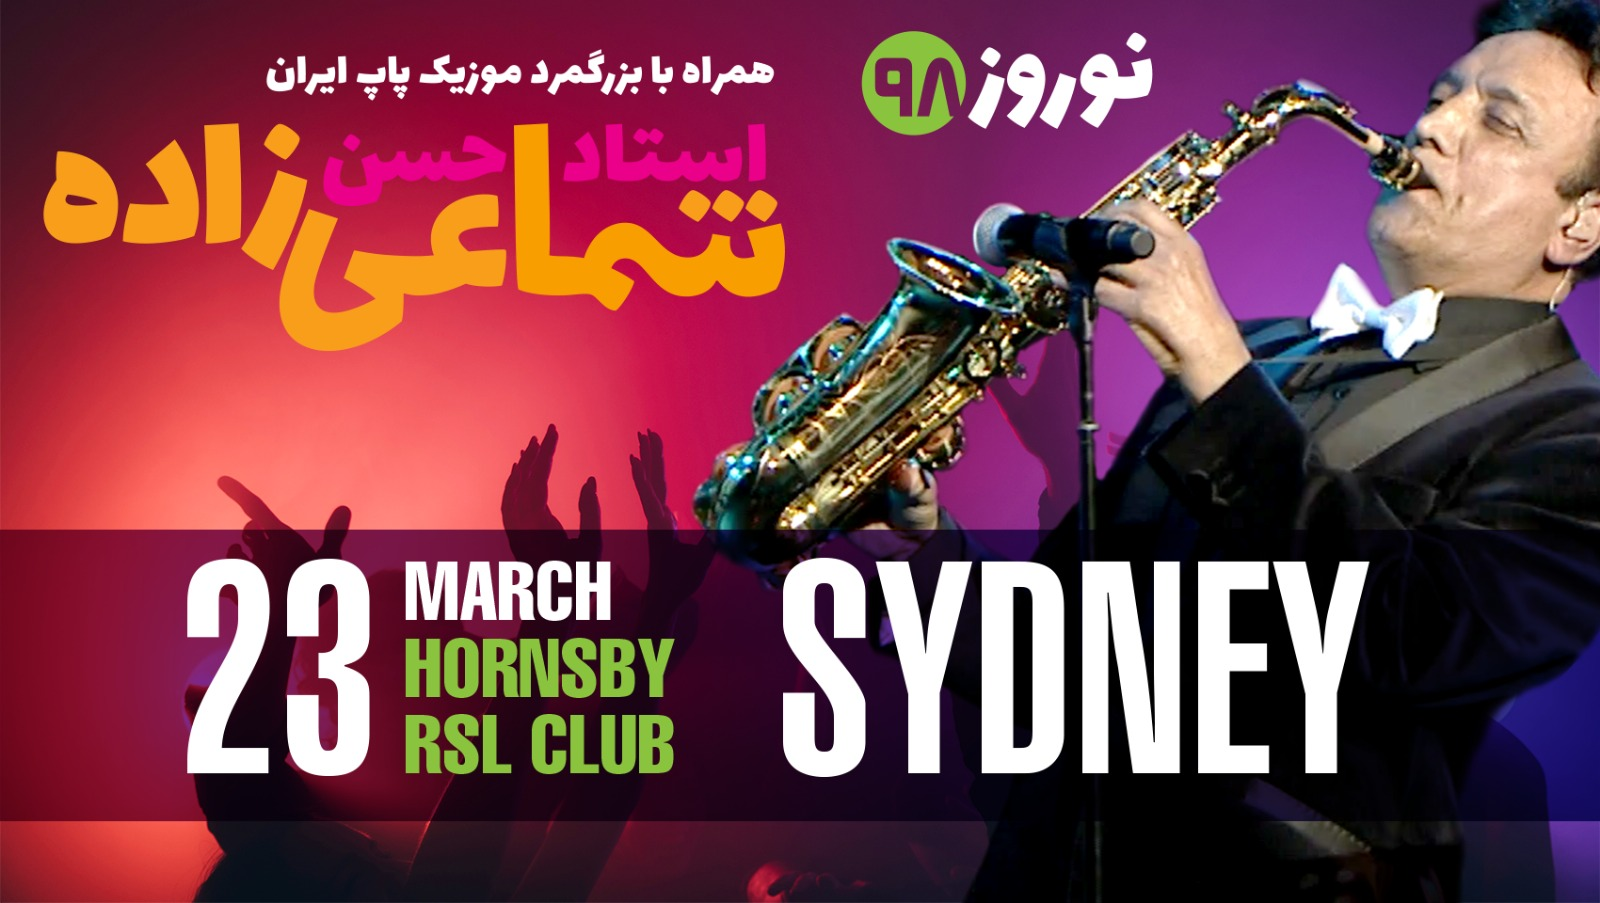 Tickets for SHAMAIZADEH in SYDNEY - NOROOZ concert in HORNSBY from Ticketbooth